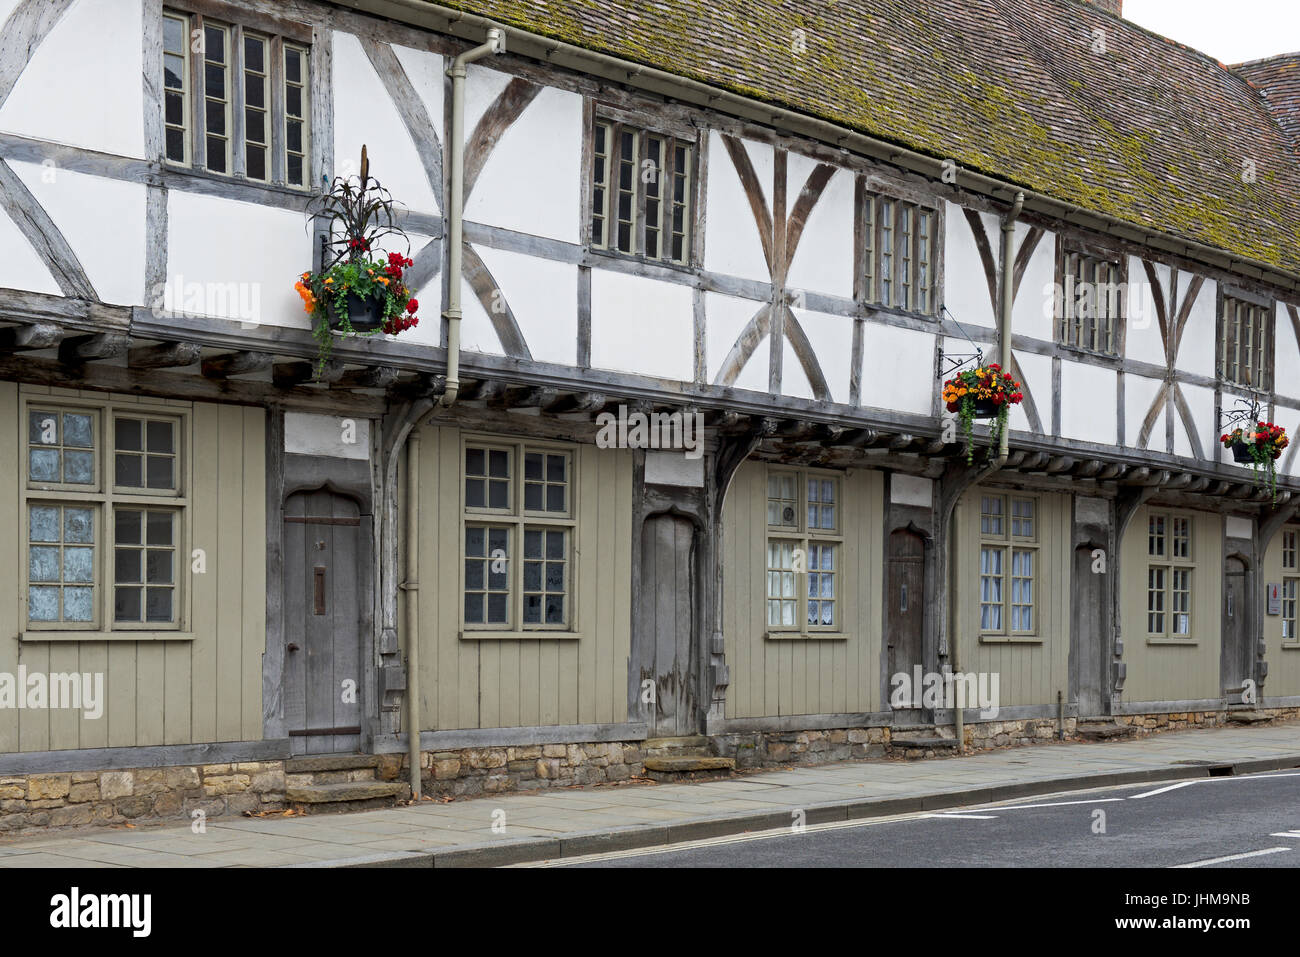 Timber-framed buildings in Tewkesbury, Gloucestershire, England UK - Stock Image